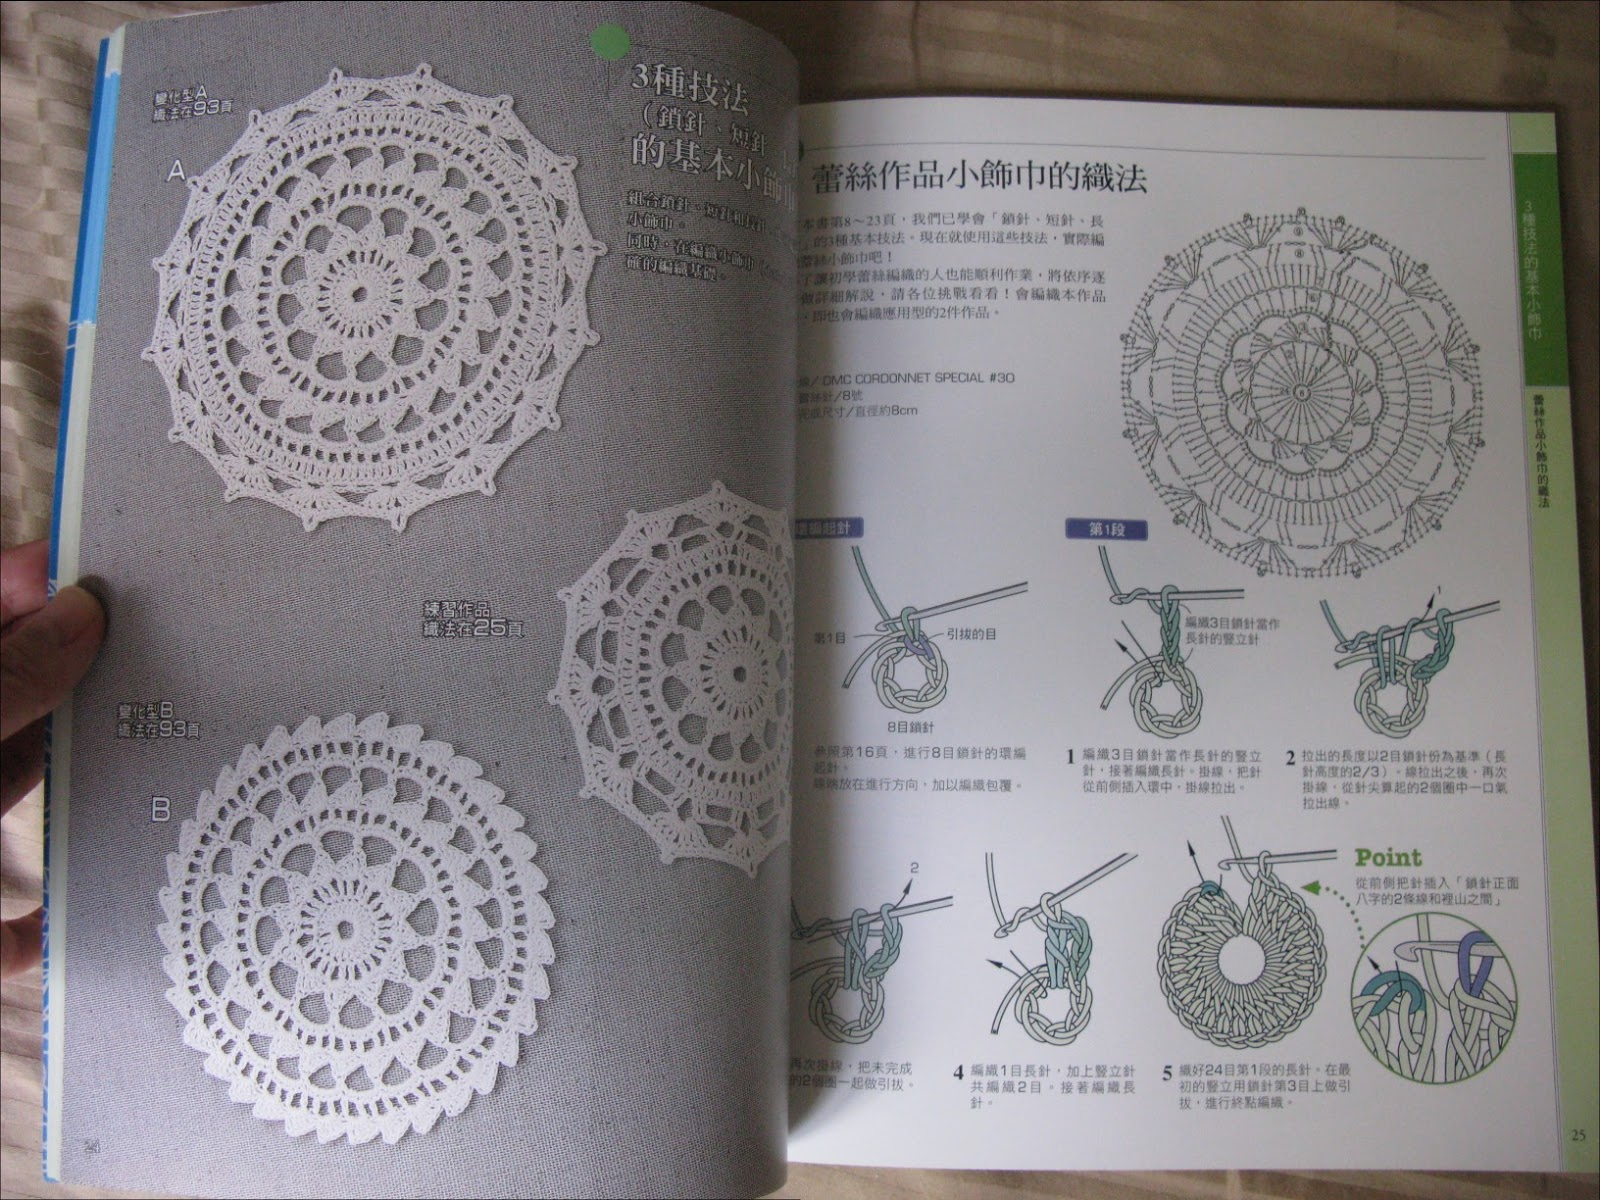 Crocheting Lace For Beginners : MyCreativeCard.com: Japanese Crochet Book - Lace Crochet for Beginners